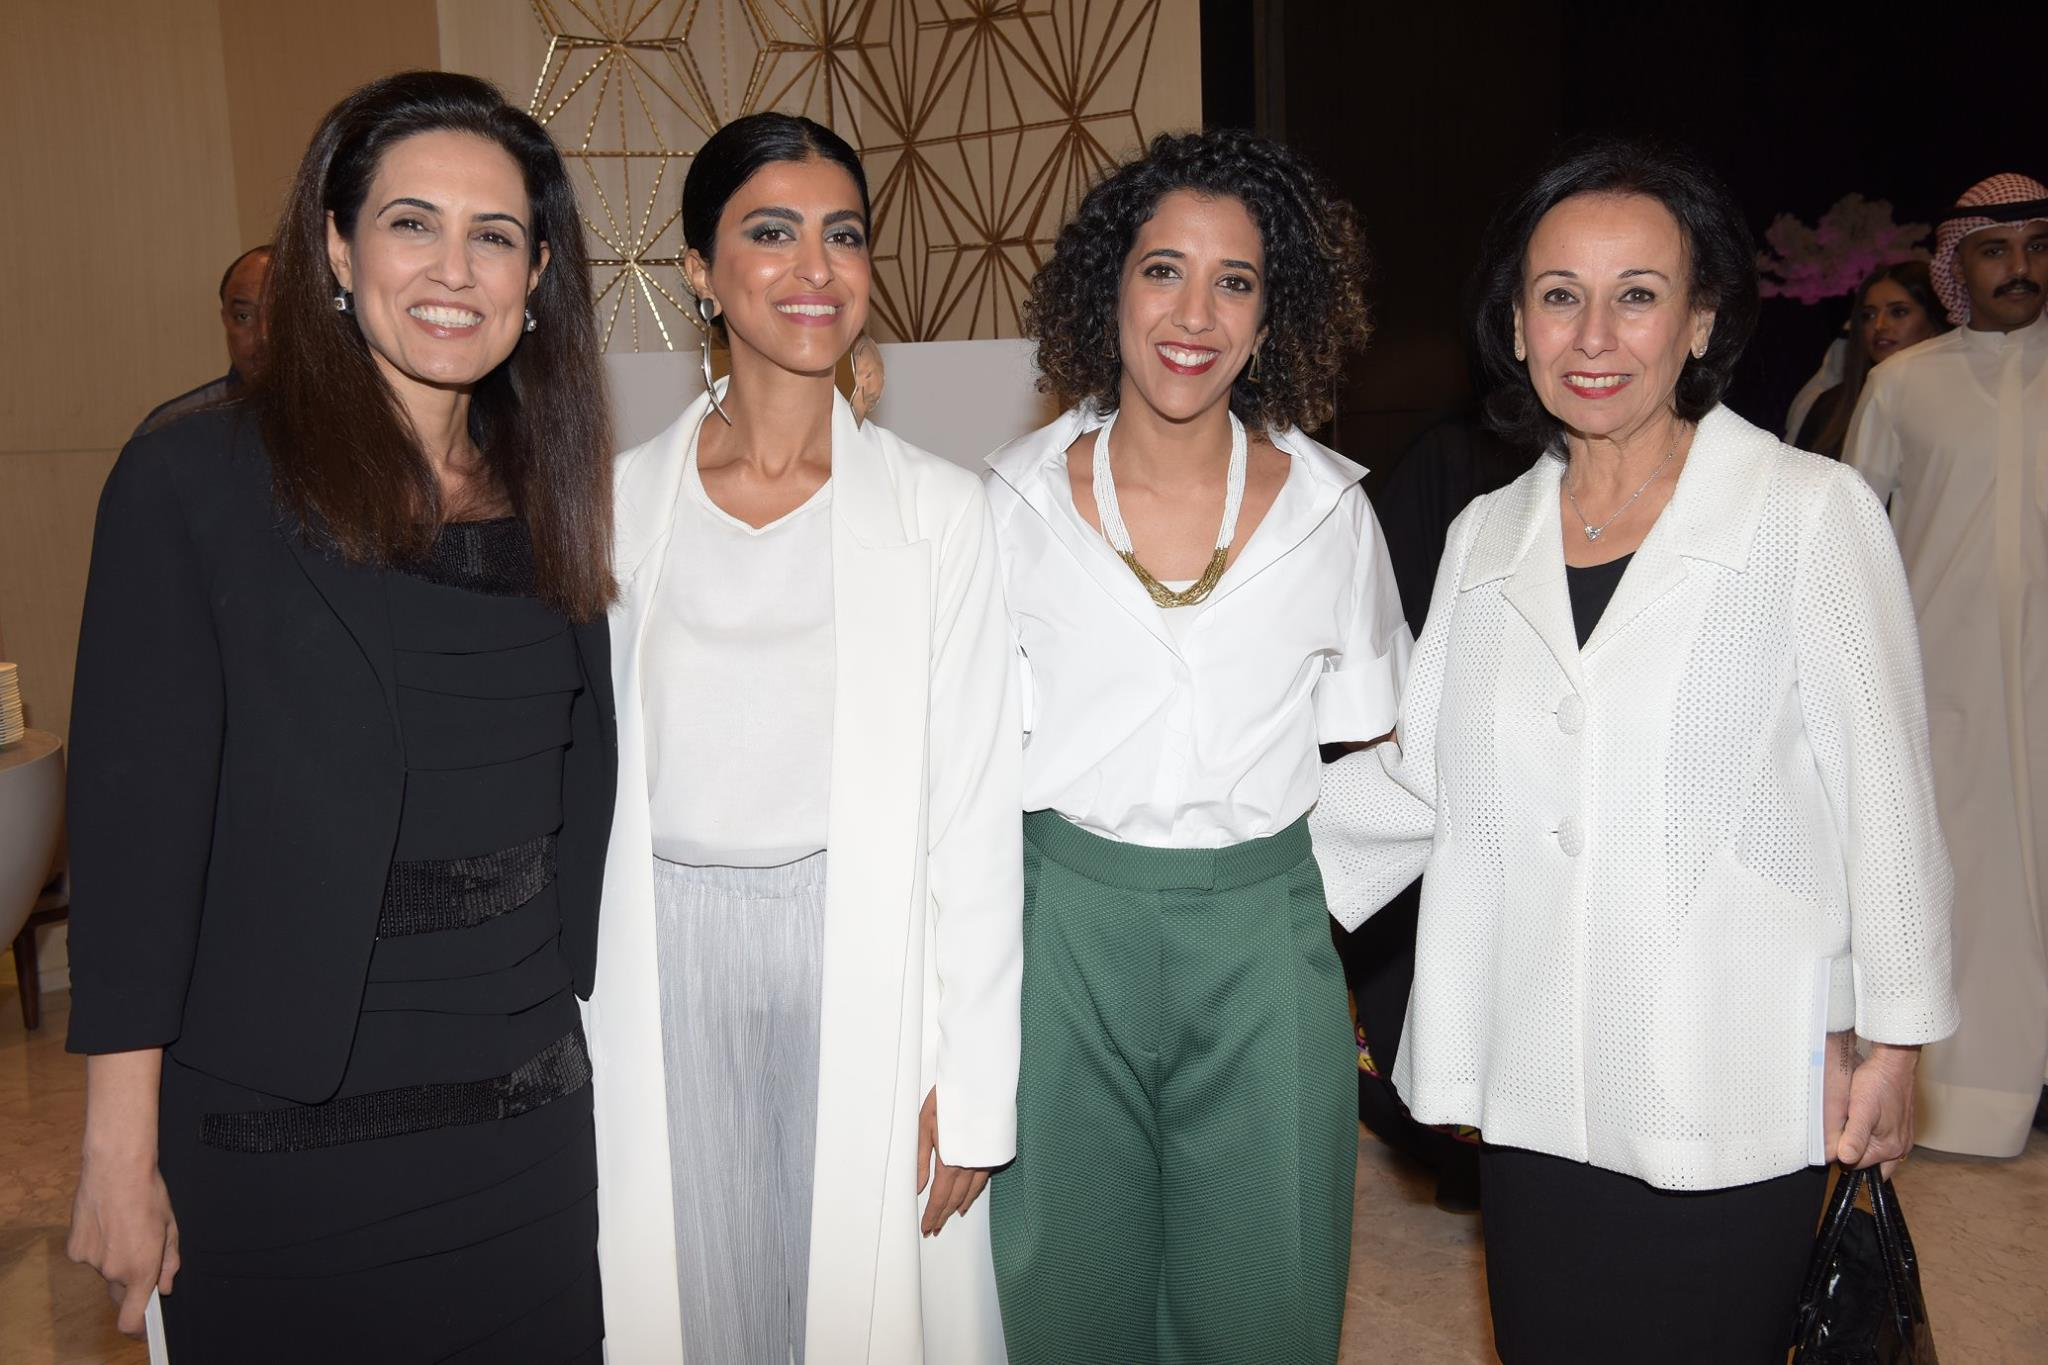 An evening full of happiness, inspiration and creativity with Rana Al-Khaled, Co-Founder Protégés, Sara Al Nafisi & Hussa Al Humaidhi, Cultural Developers NUQAT, Wafa Al-Qatami, Board Member Kuwait Chamber of Commerce & Industry (right) ©Those Who Inspire